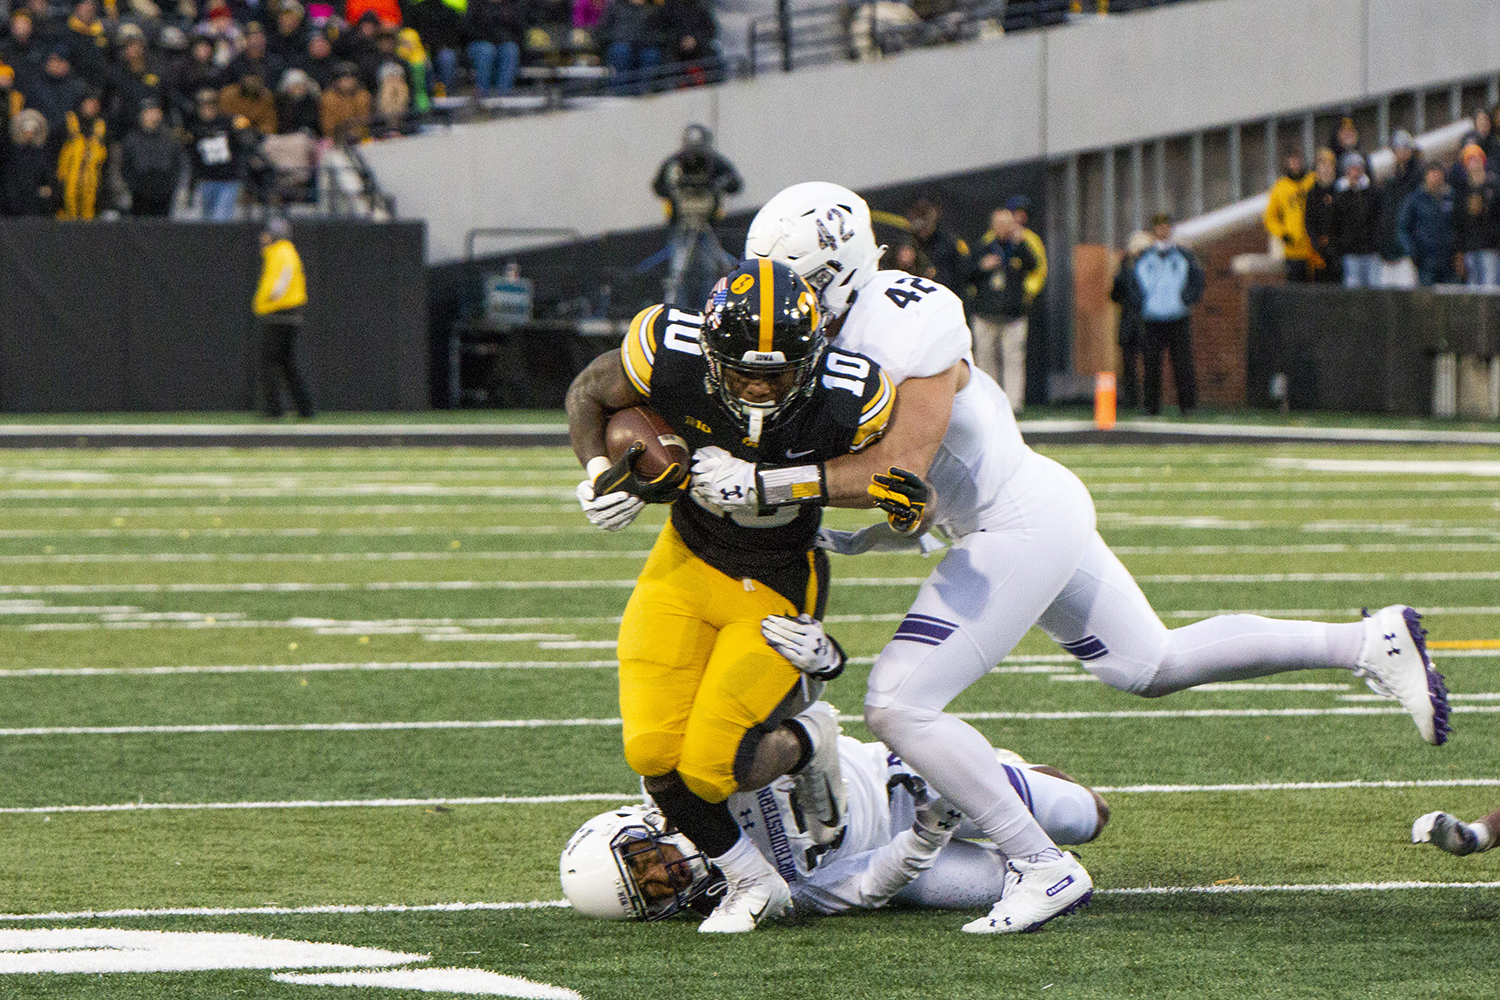 Iowa running back Mekhi Sargent runs the ball during the Iowa/Northwestern game at Kinnick Stadium on Saturday, Nov. 10, 2018. The Wildcats defeated the Hawkeyes 14-10.